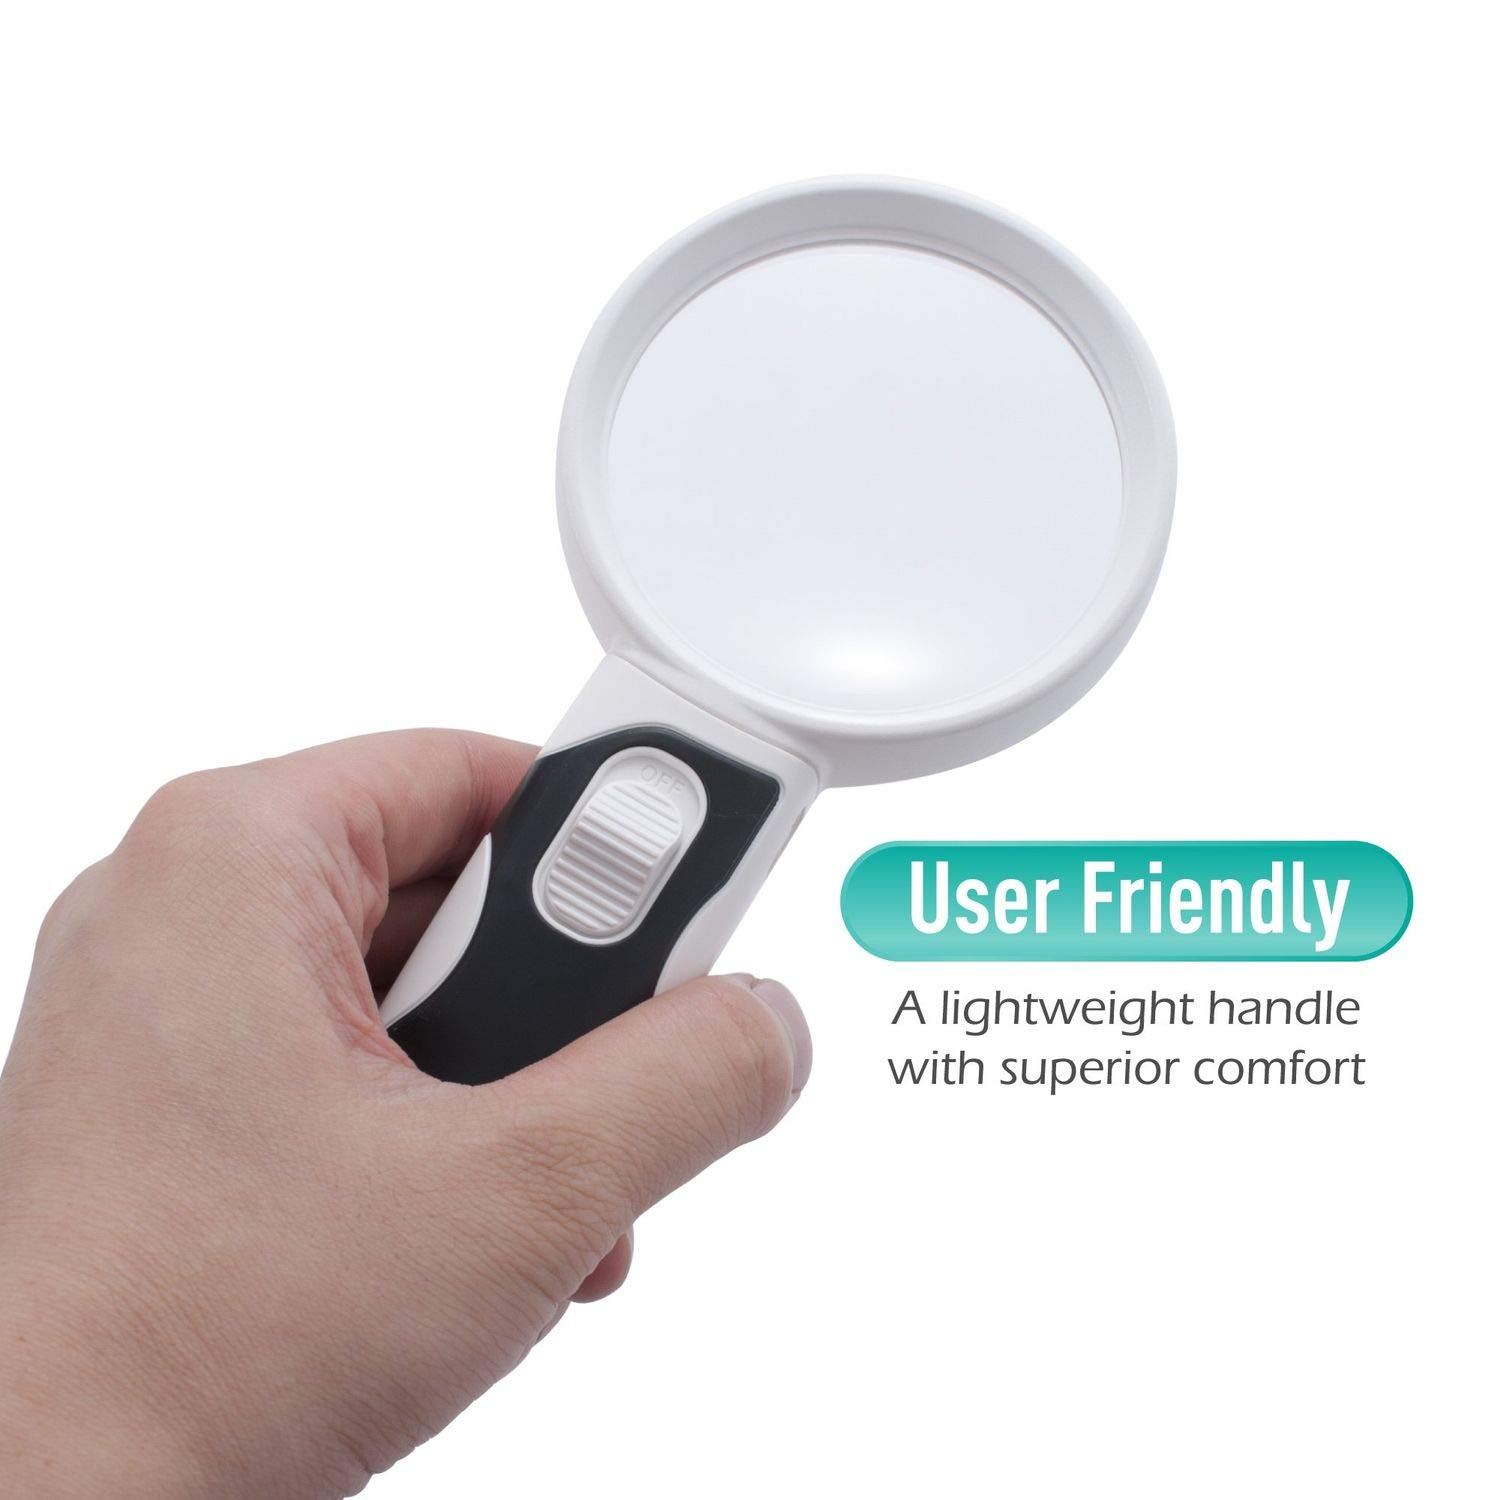 Handheld LED Magnifying Glass with 3 Replacement Lens, Insten 2.5X 6X 16X Handheld Magnifier Set with Lights for Seniors, Kids, Reading Maps, Jewellery, Watch & Computer Repairs, Inspection by INSTEN (Image #5)